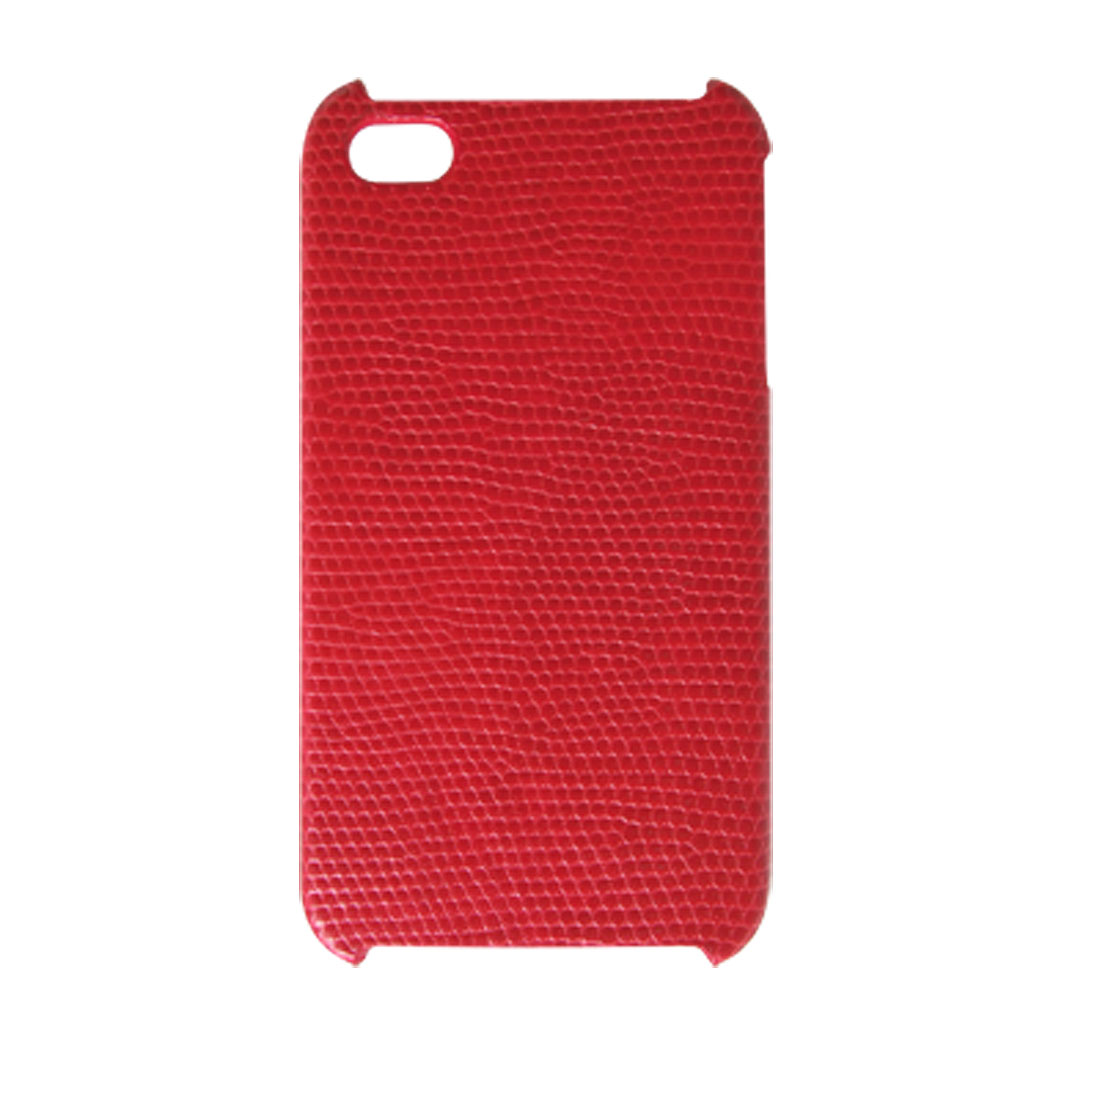 Red Nonslip Case Hard Plastic Back Cover for iPhone 4 4G